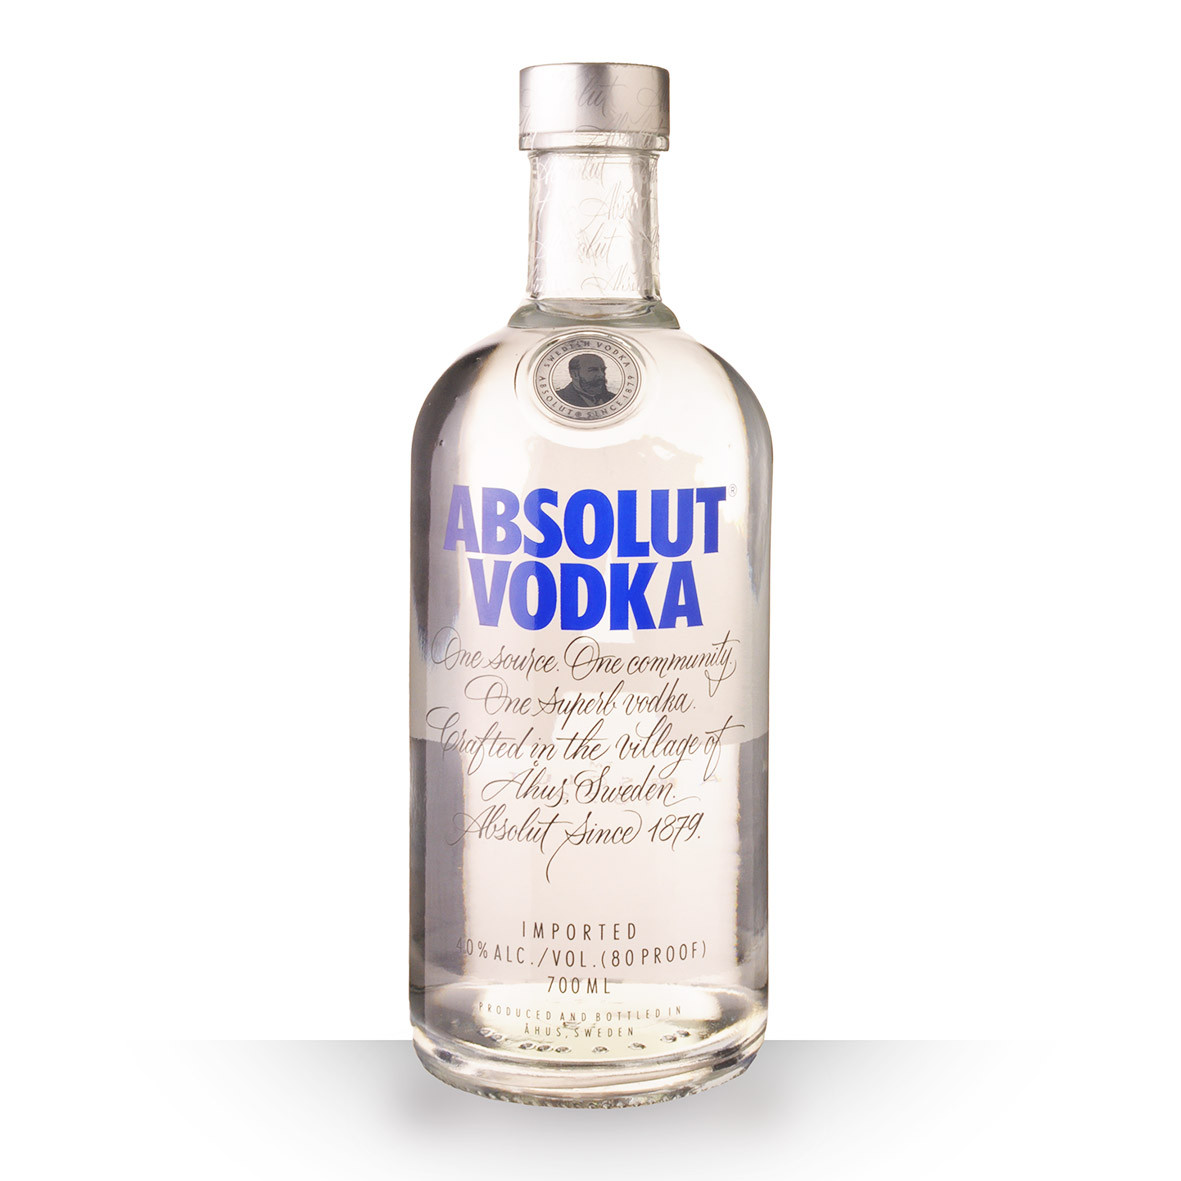 Vodka Absolut Vodka 70cl www.odyssee-vins.com